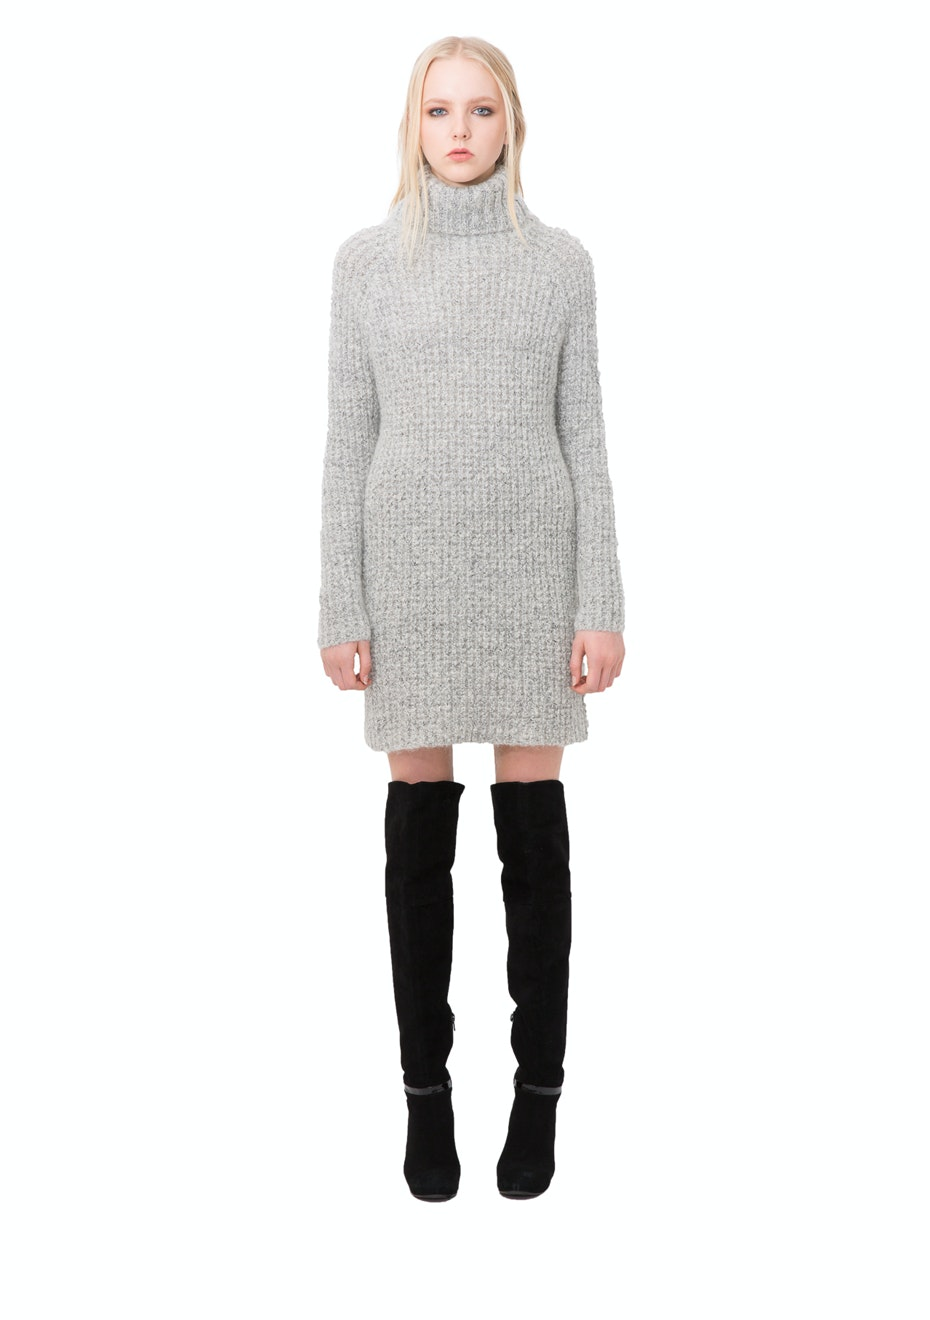 Stolen Girlfriends Club - Swamp Life Sweater Dress - Ivory